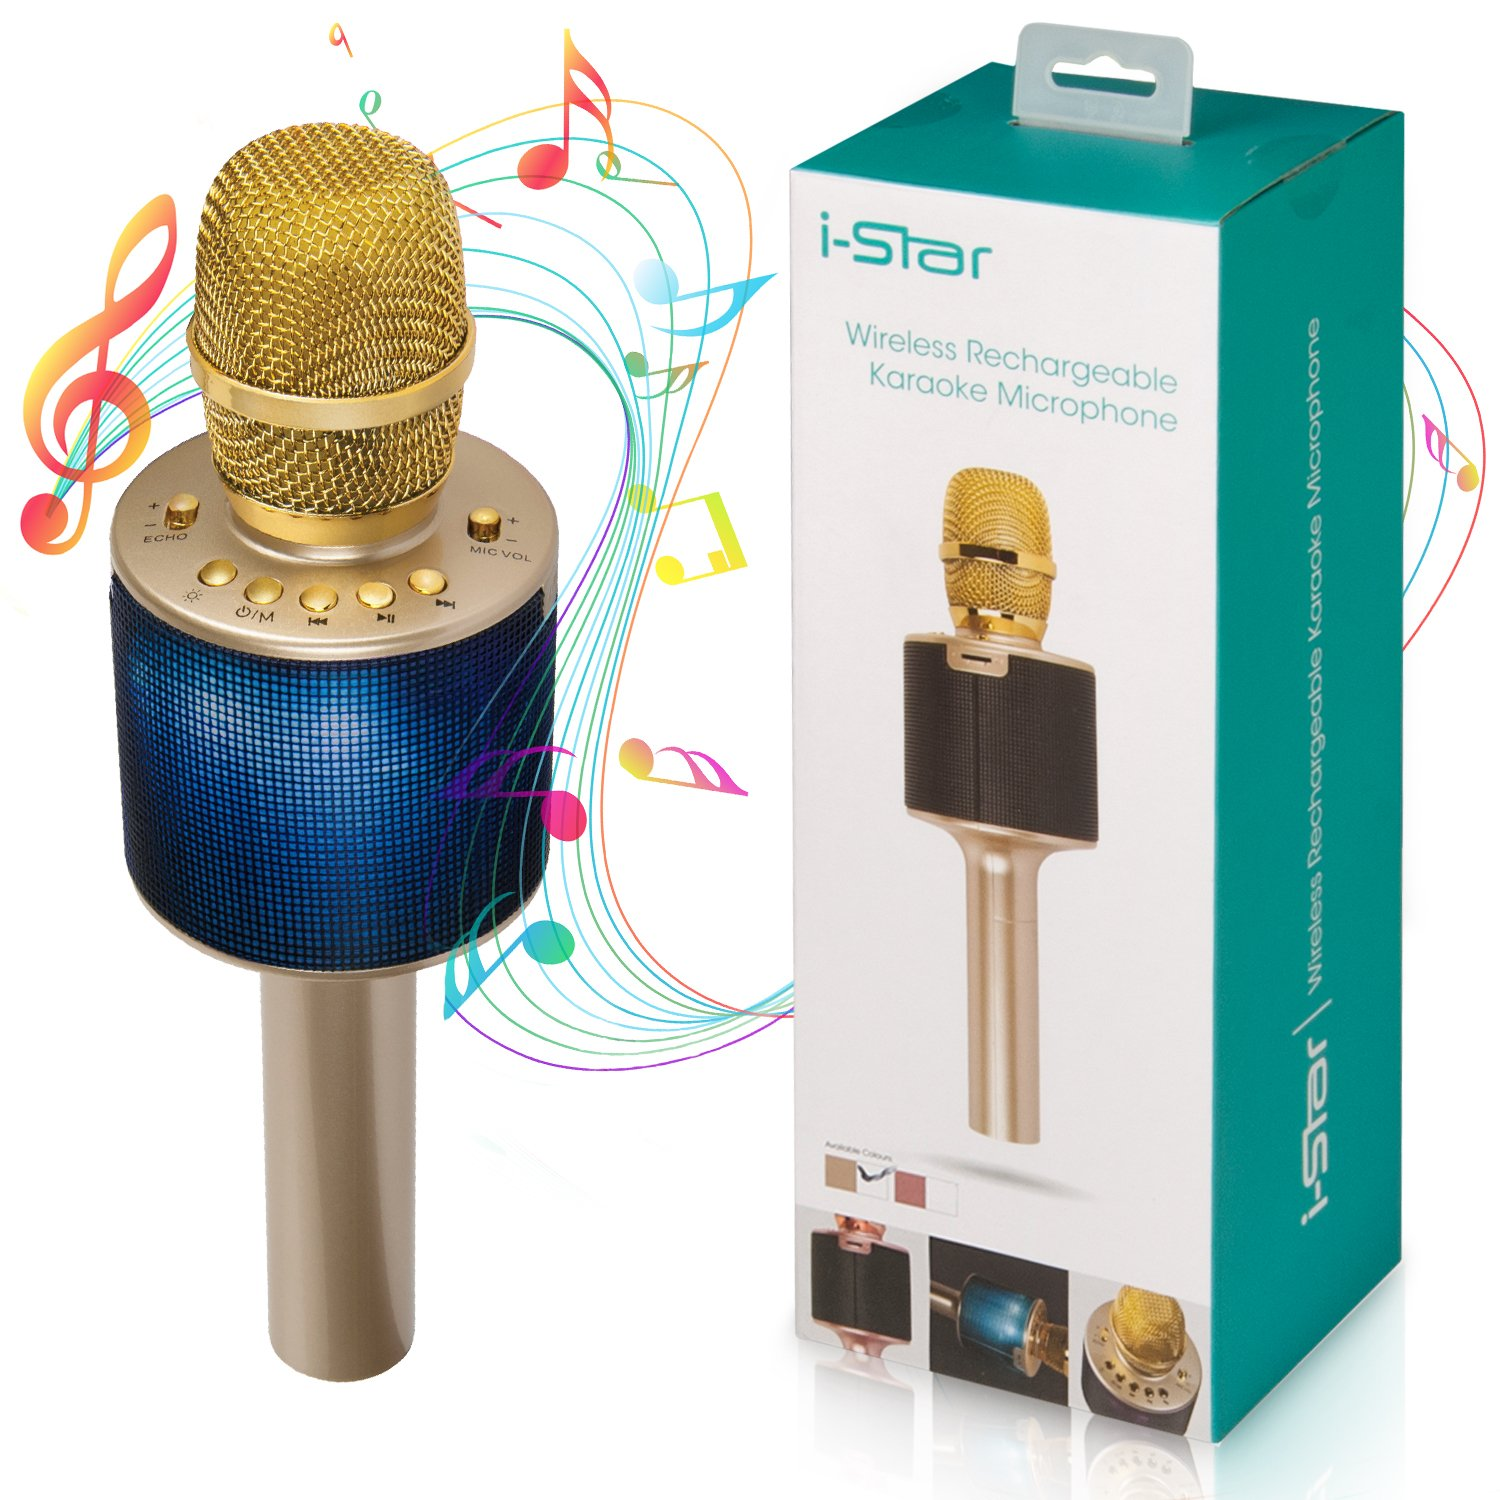 Bluetooth Karaoke Microphone | Wireless 3-in-1 Portable Handheld Karaoke Machine Adults Kids | Pairable Mic Duets Multi Color LED Lights (Gold) Istar PI00648